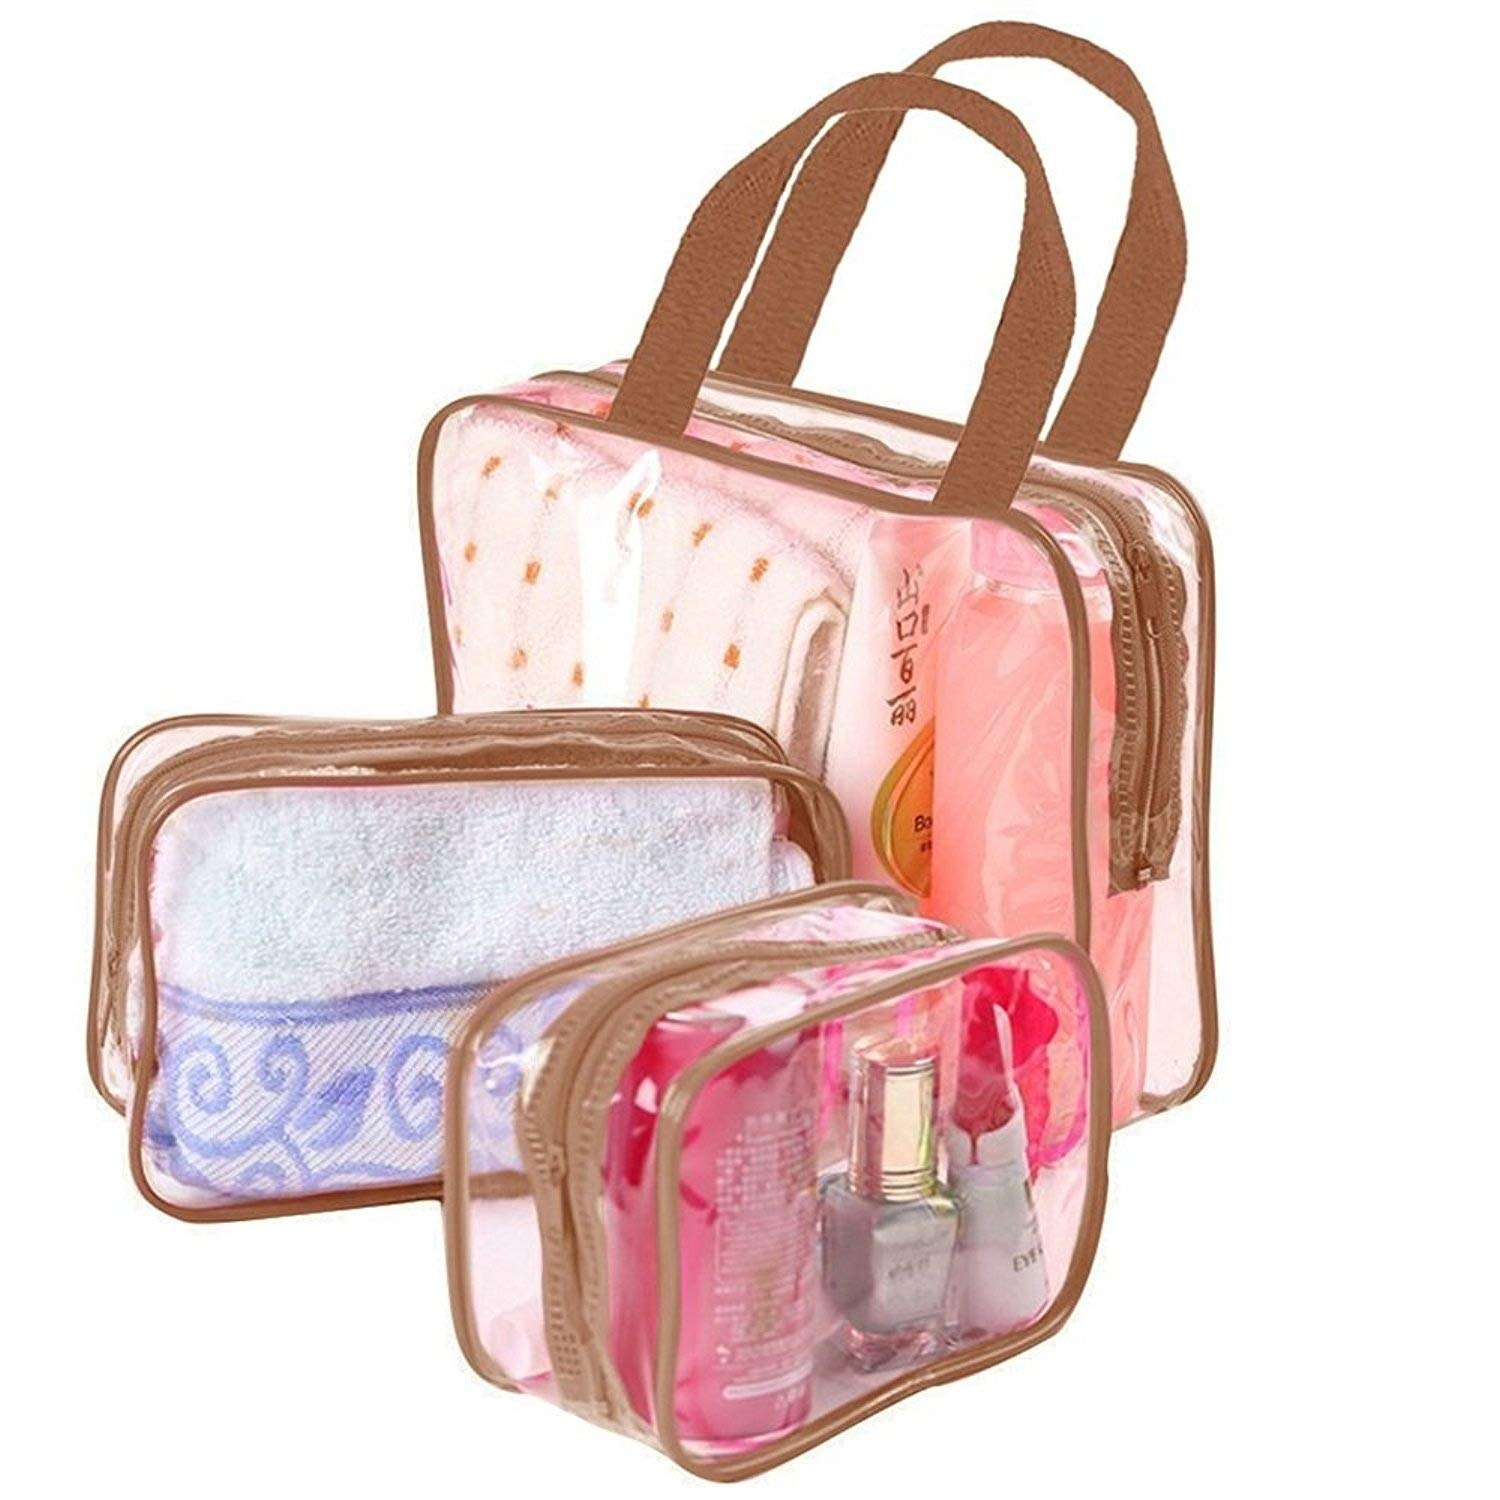 ROHANS 3PC PVC Toiletry Transparent Waterproof Pouch Cosmetic Wash Travel Set Bath Black Pink Blue Brown